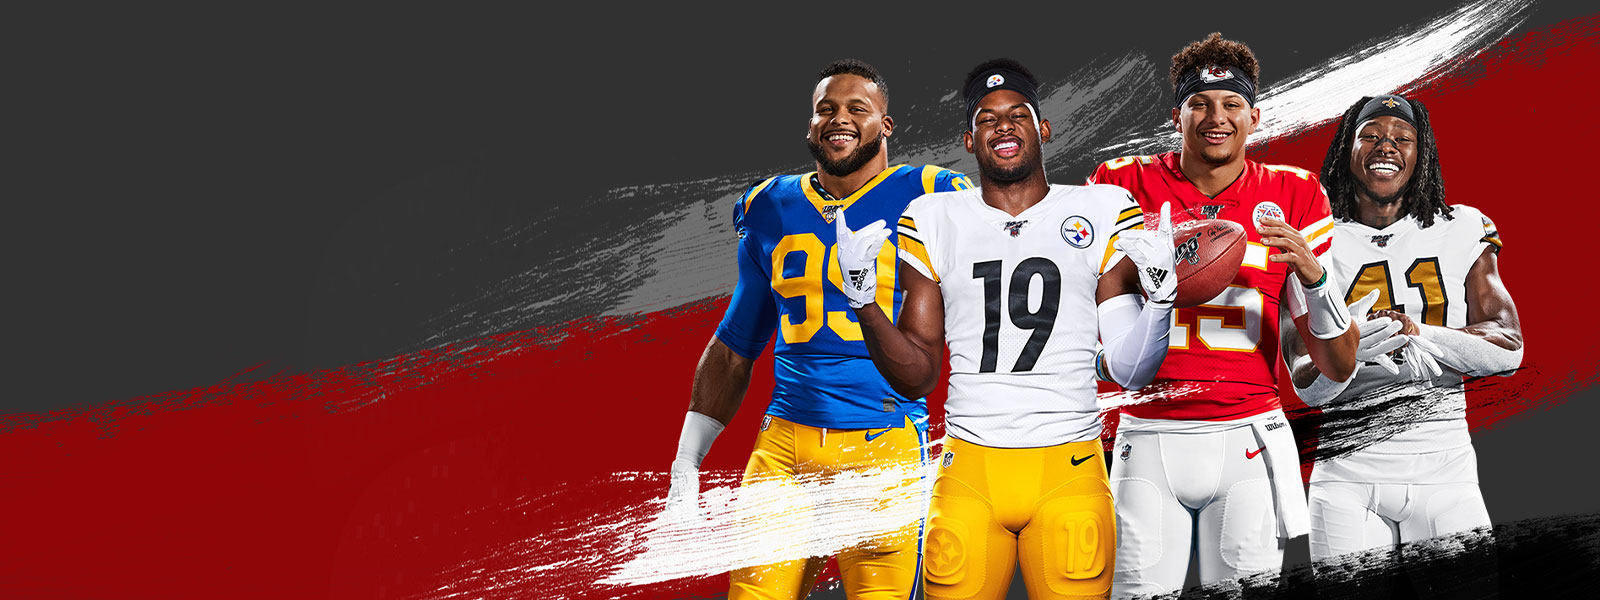 Four NFL players from different teams posing with red, white, gray, and black paint strokes surrounding them